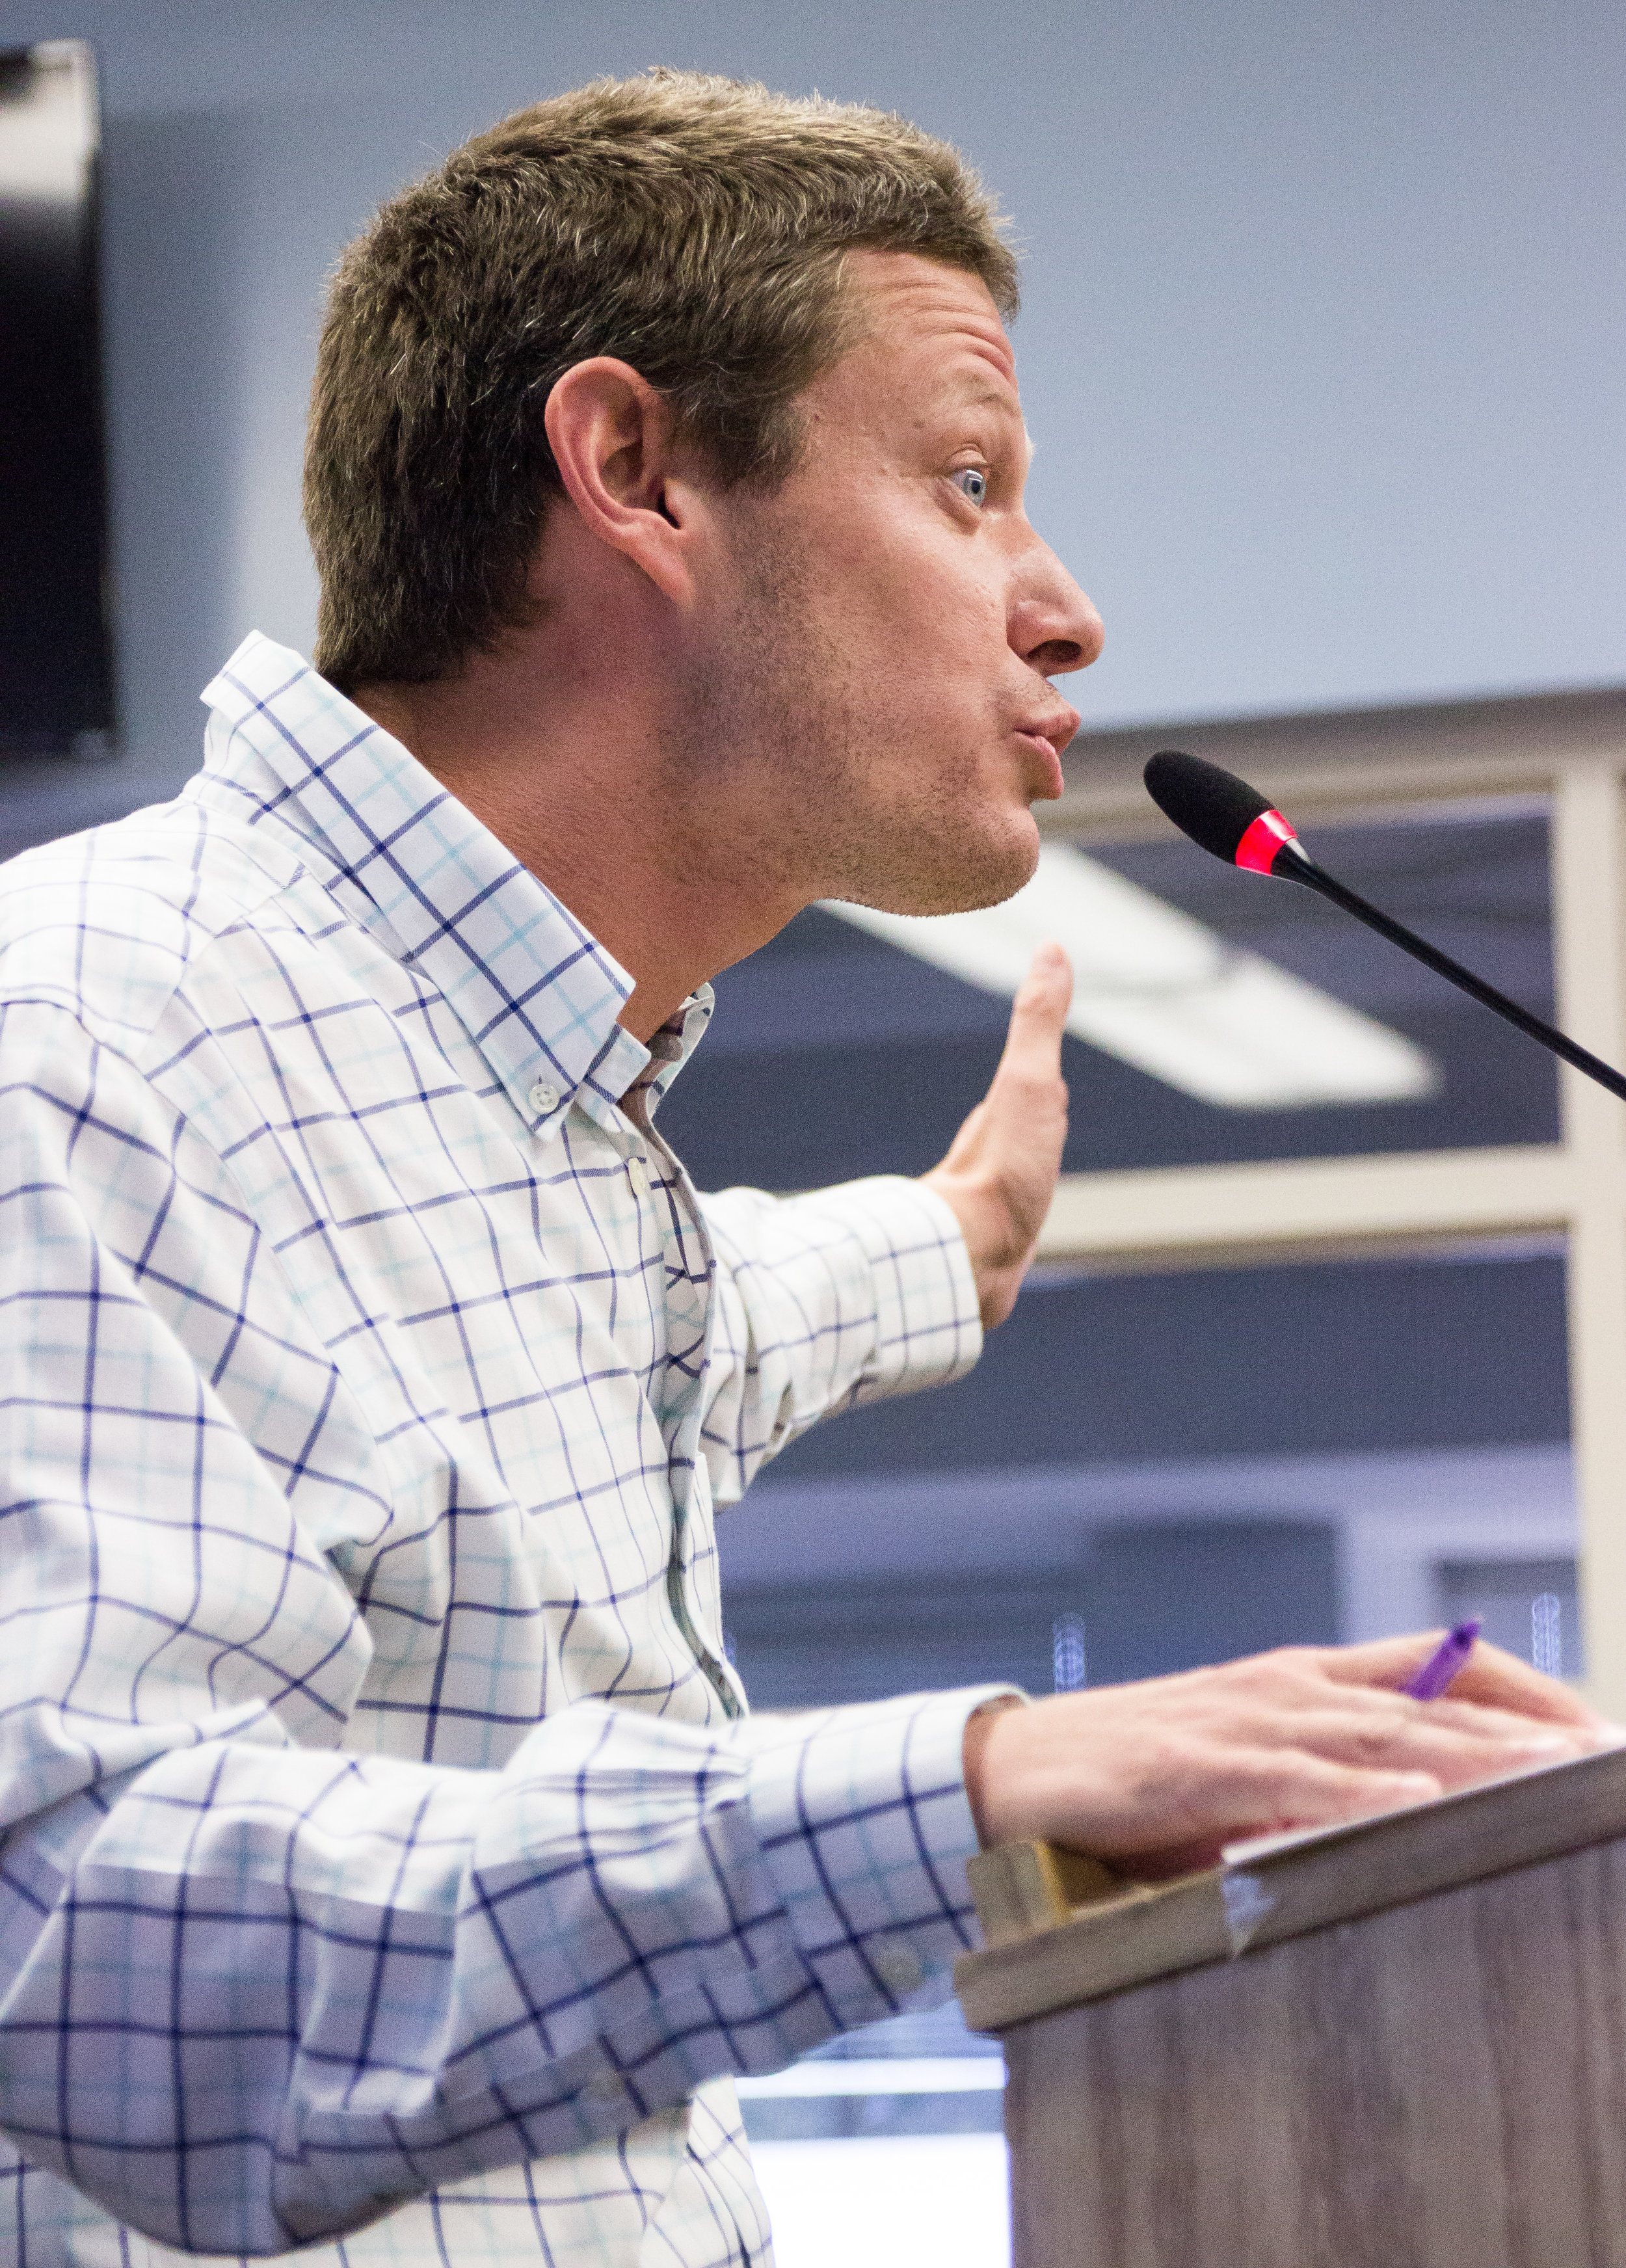 Art History Professor and Gender-Sexuality Alliance advisor, Nate Donahue, takes to the podium during the public comments section of the Associated Student Board meeting on Monday, Nov. 28, 2017, in the Cayton Center to comment on the proposal to begin construction on the Gender Equity Center in place of a portion of the Associated Students Computer Lab. (Photo By: Marisa Vasquez)